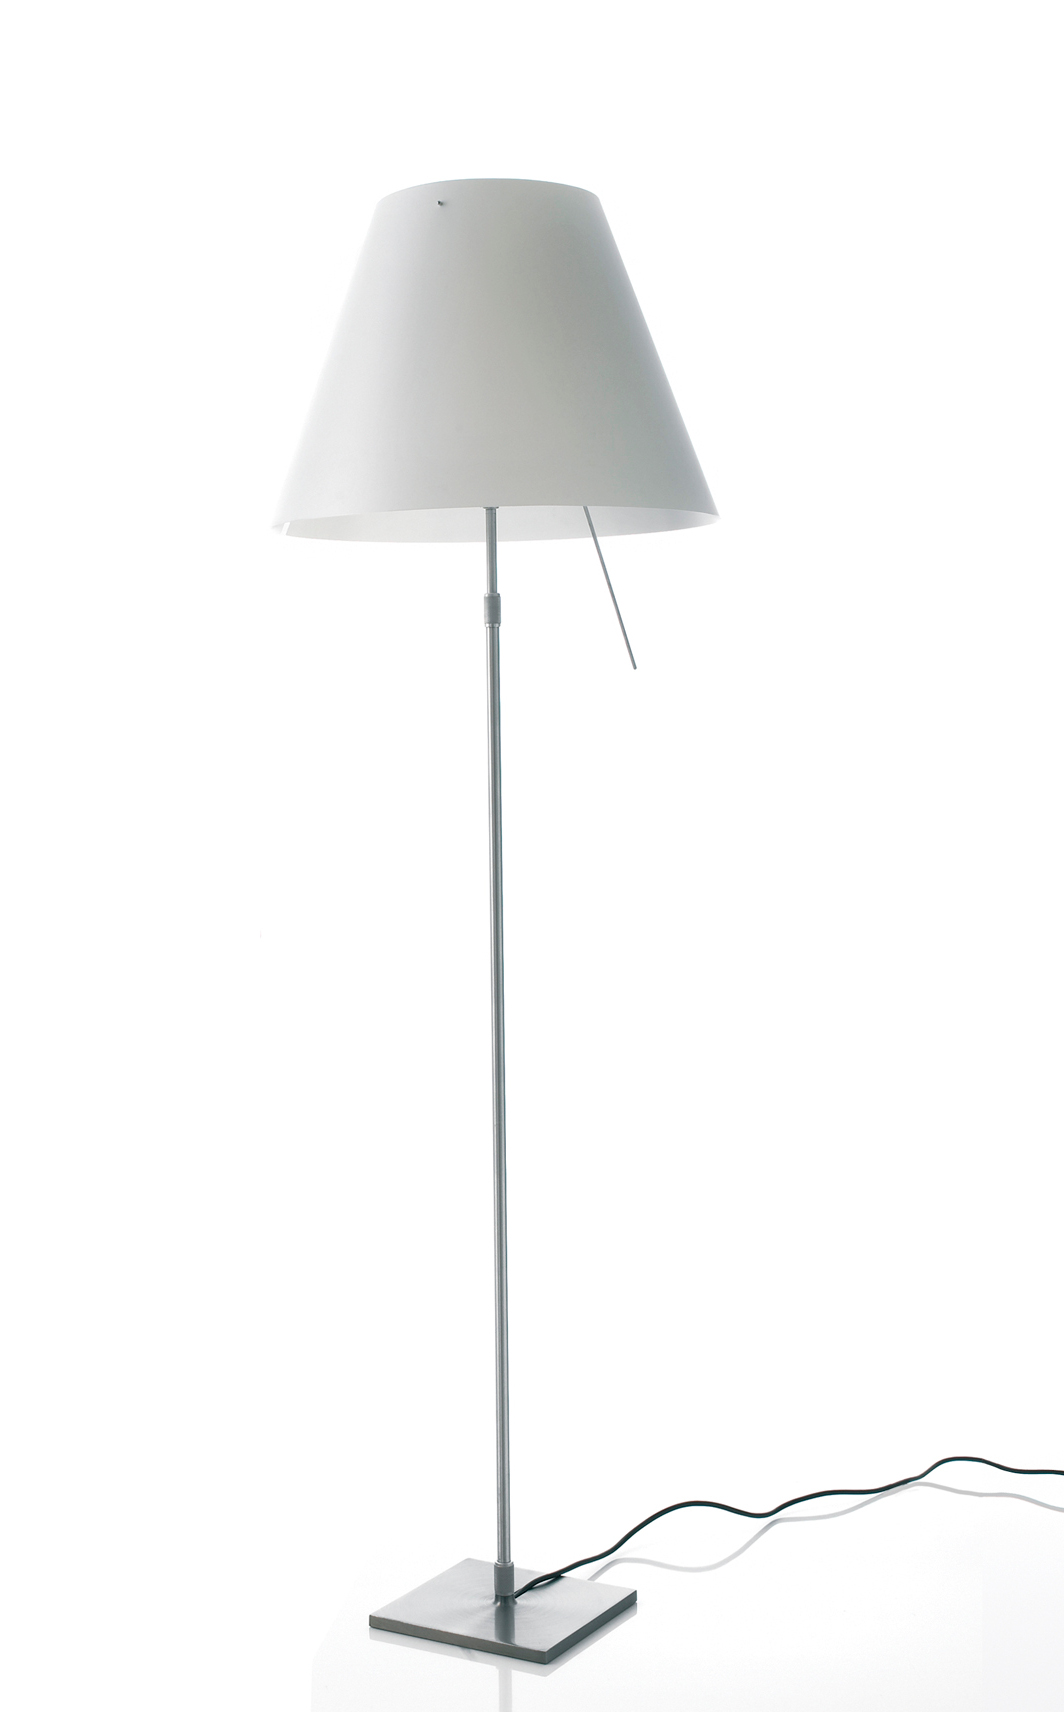 Costanza Floor Lamp Complete telescópica with dimmer + white lampshade + Accessory Diffuser E27 105w - Aluminium